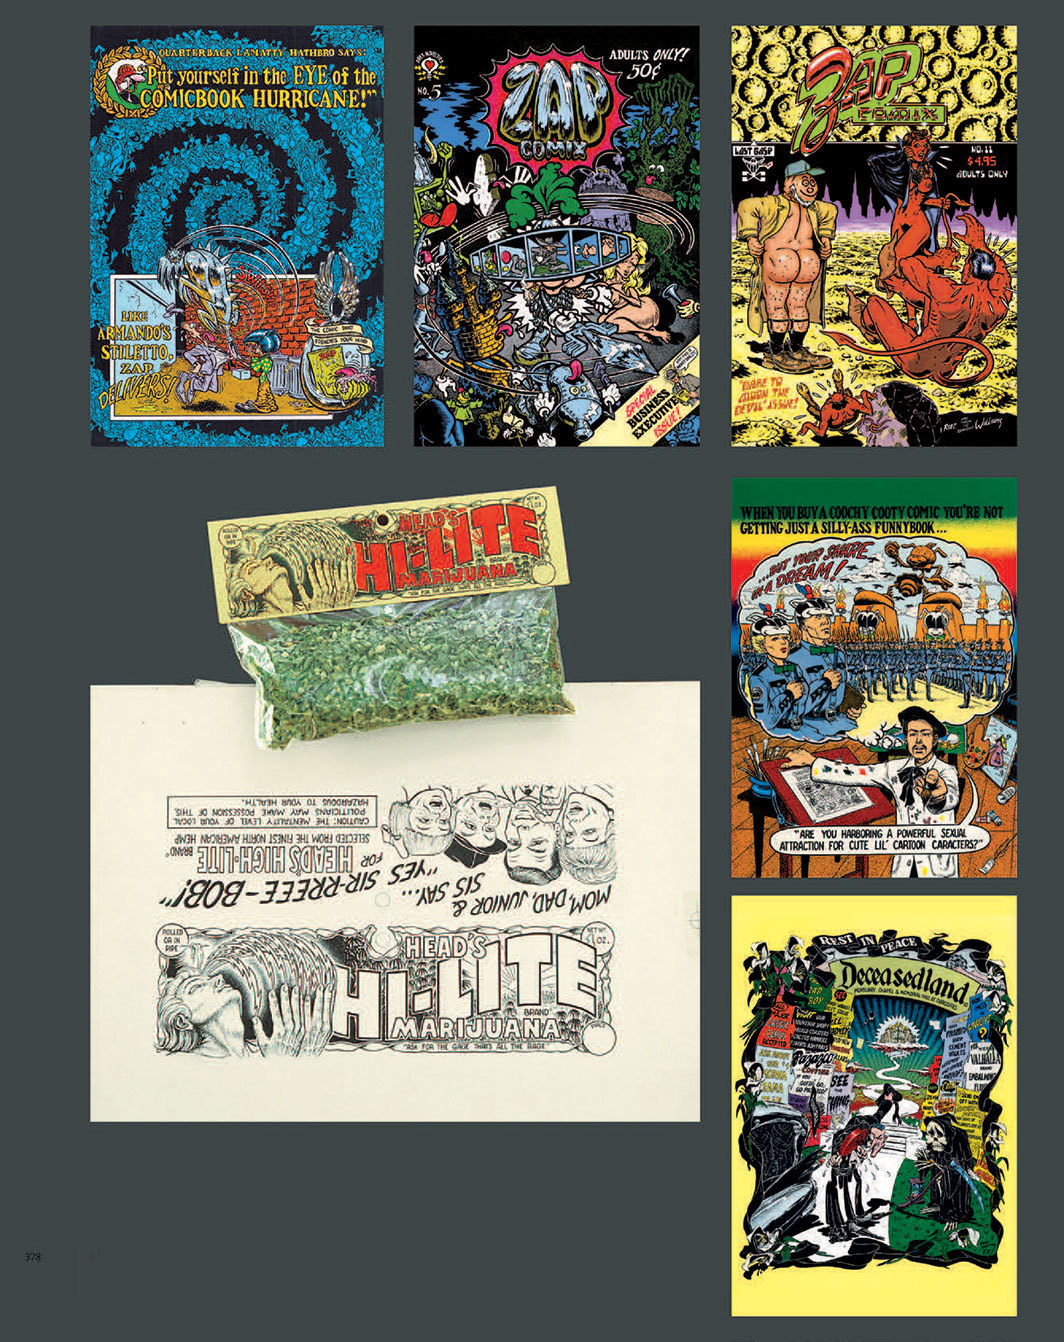 Various underground comic covers, 1970–85, and marijuana packaging, 1967, by Robert Williams.